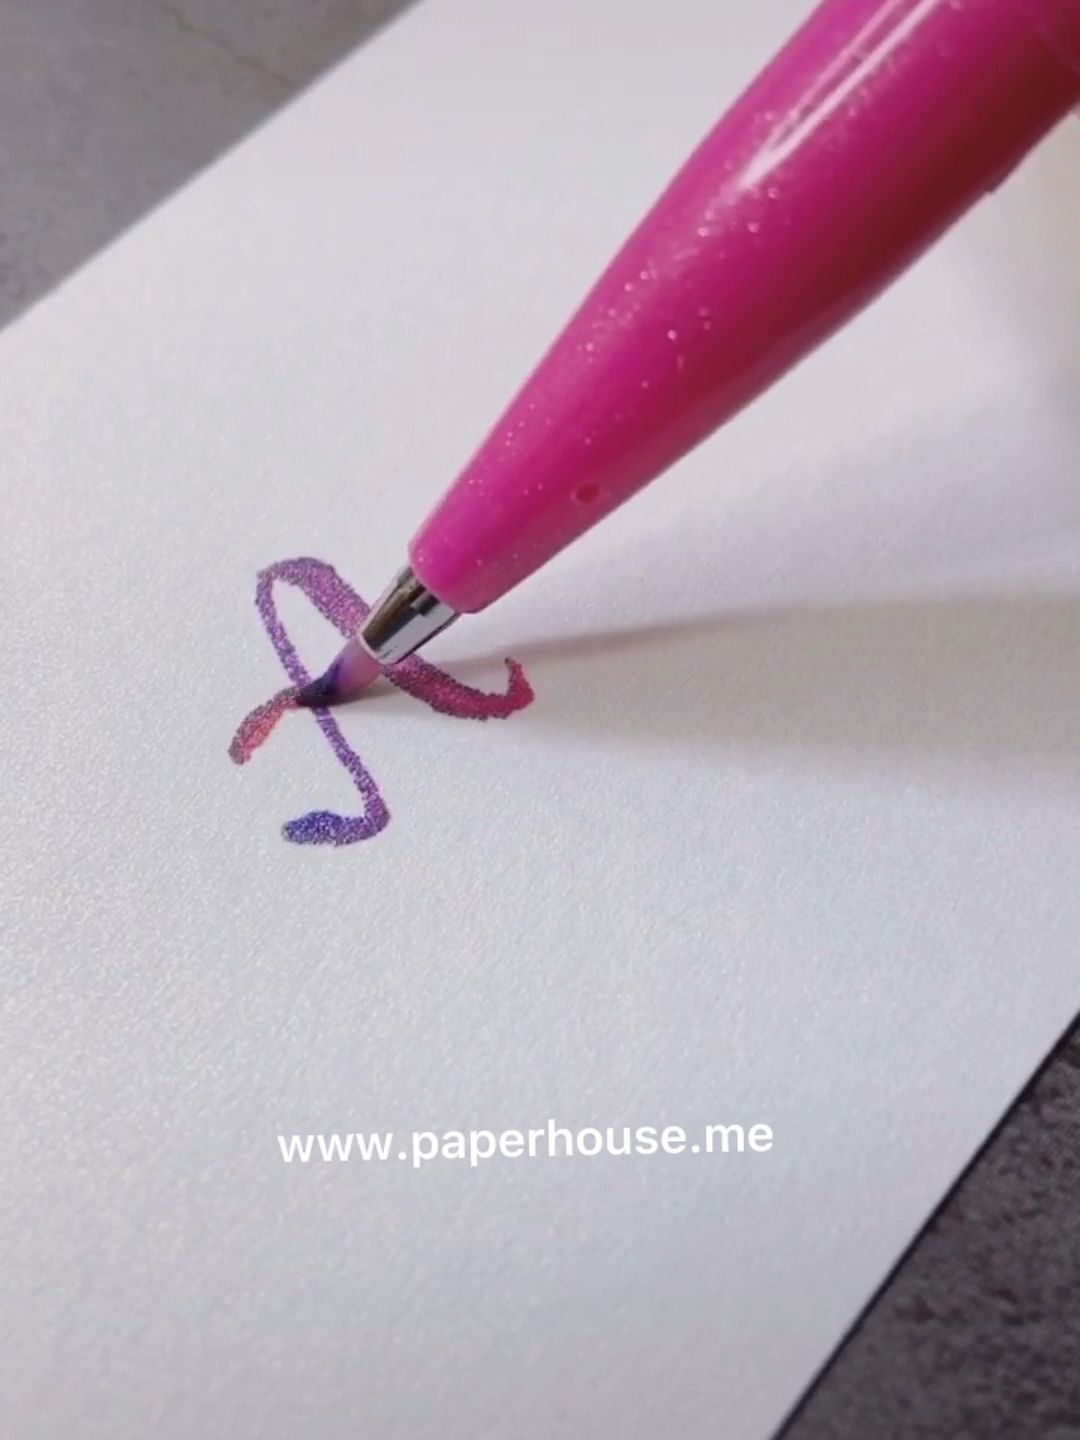 """Photo of Handwriting Styles 👉www.paperhouse.me💝Save 10% OFF with code """"PIN10""""💝Paperhouse Stationery"""